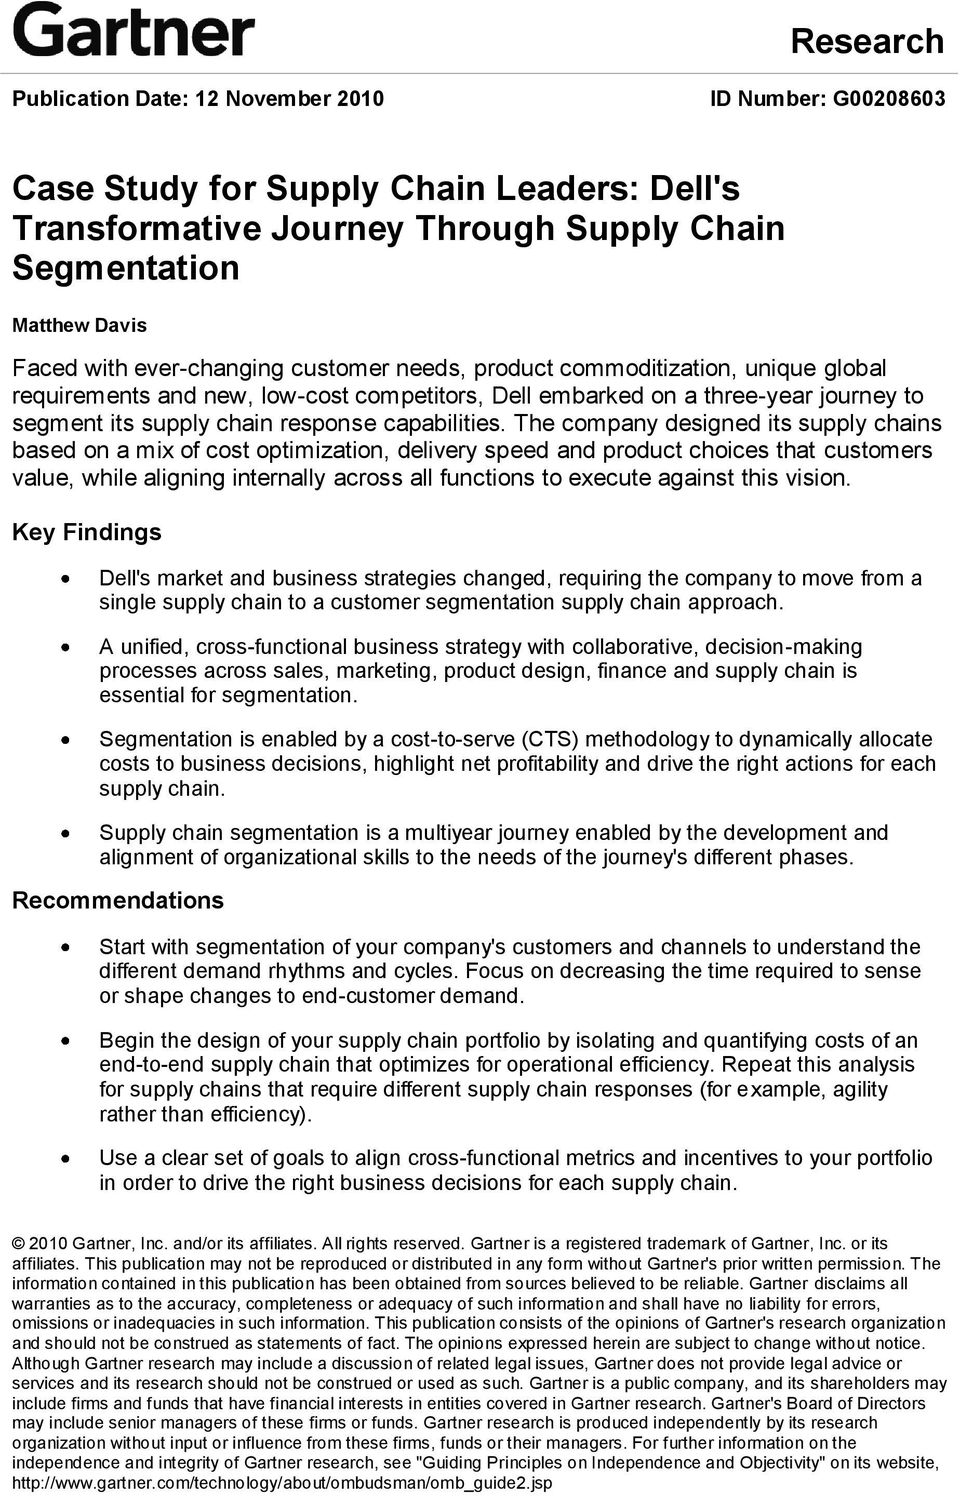 dell supply chain management case study pdf